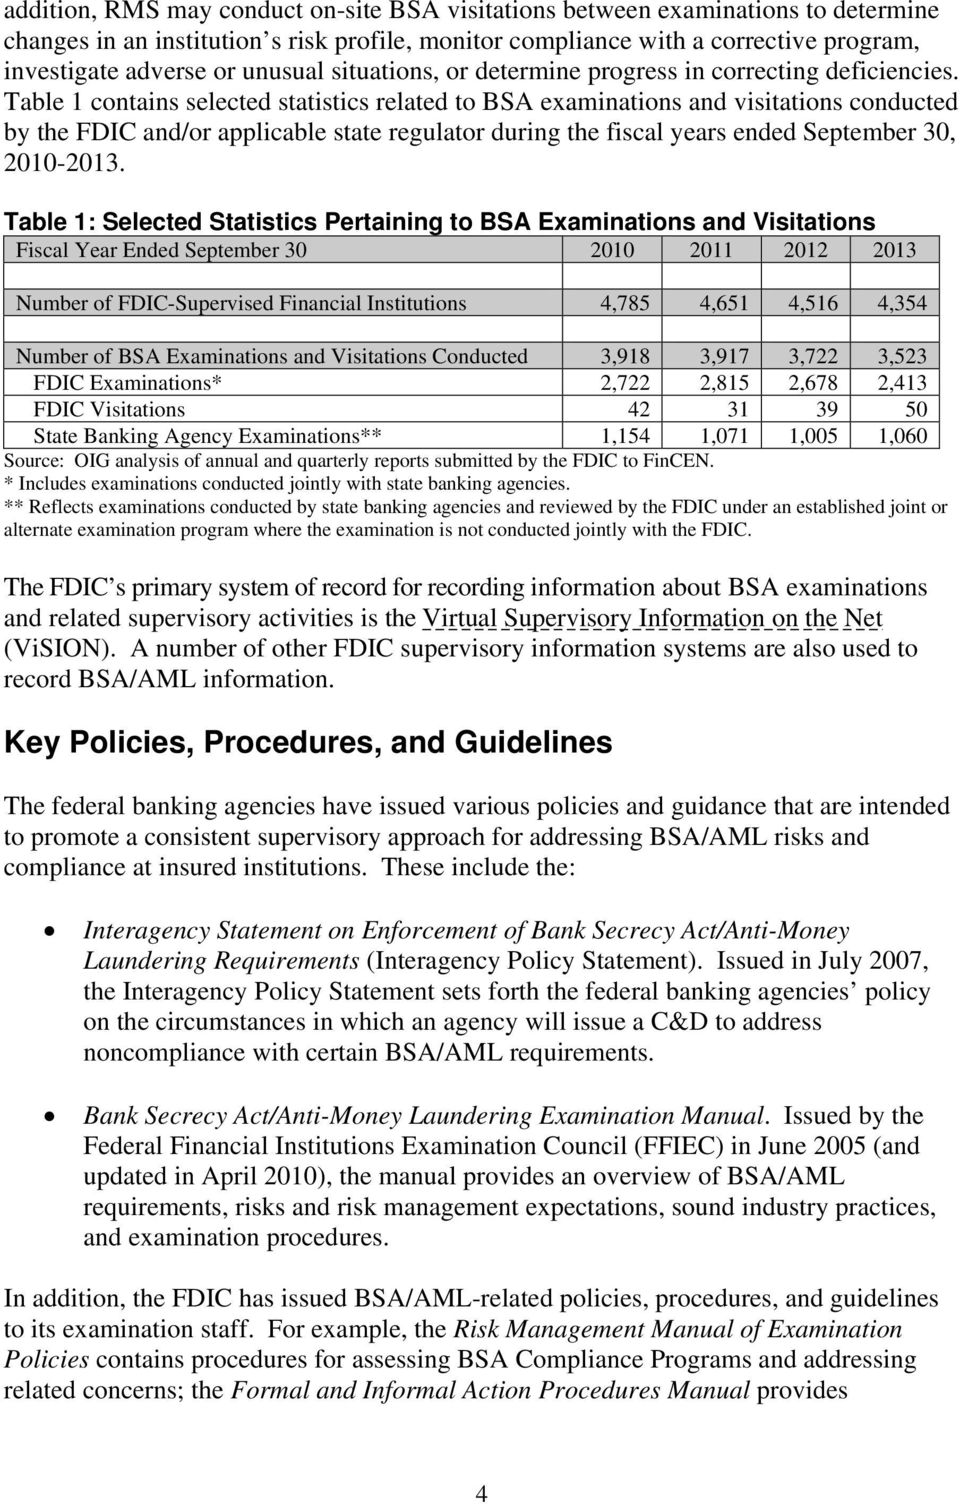 Table 1 contains selected statistics related to BSA examinations and  visitations conducted by the FDIC and